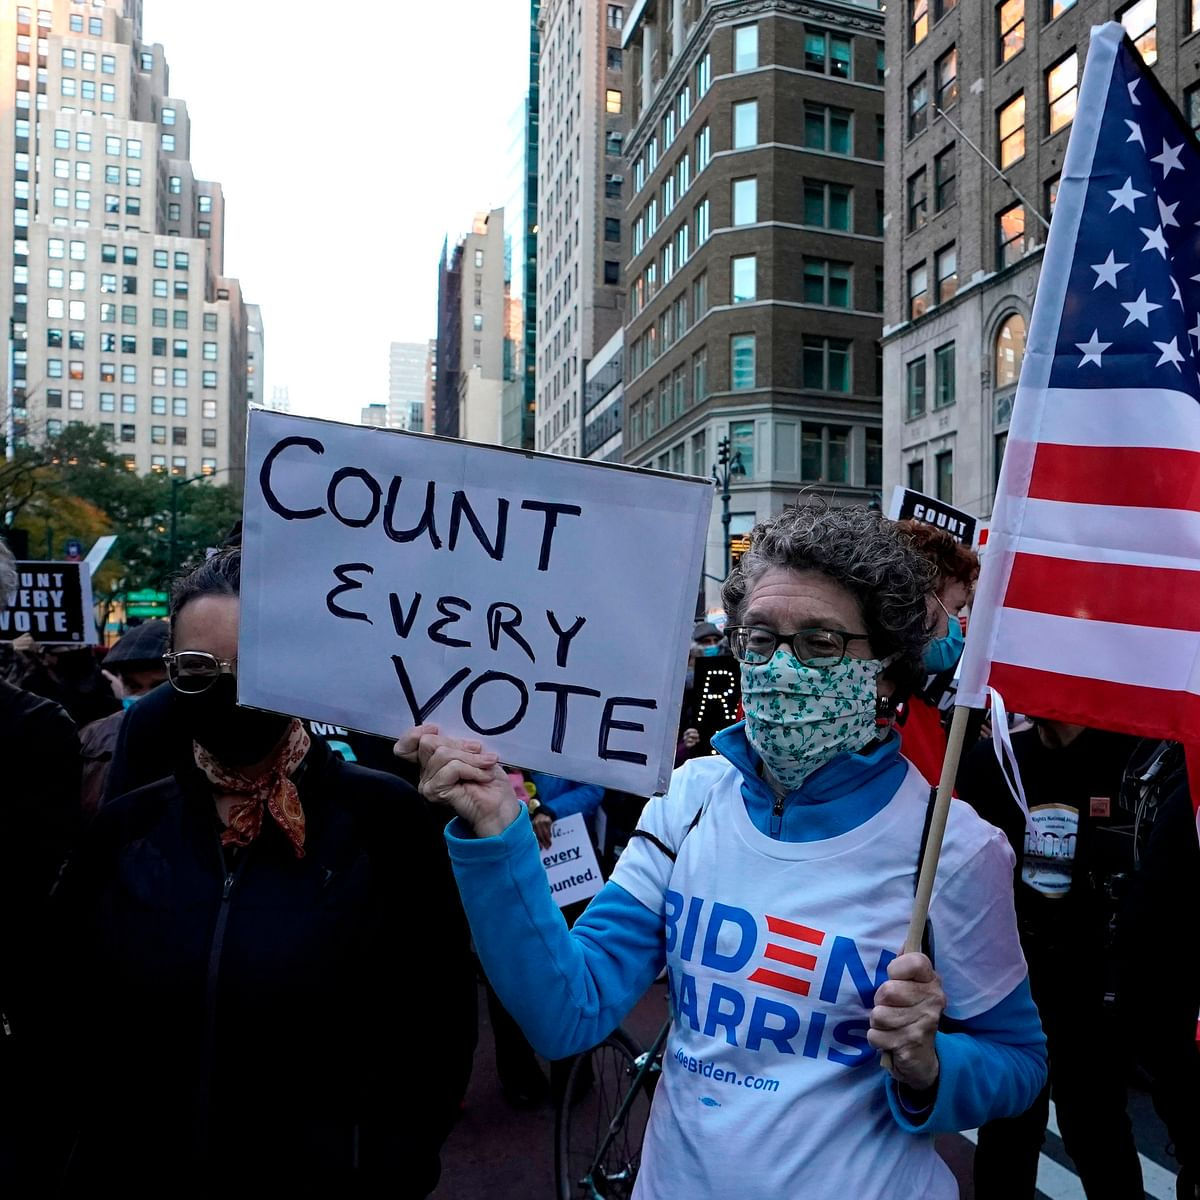 US Elections 2020: People protest in New York, Detroit, Manhattan ahead of poll results